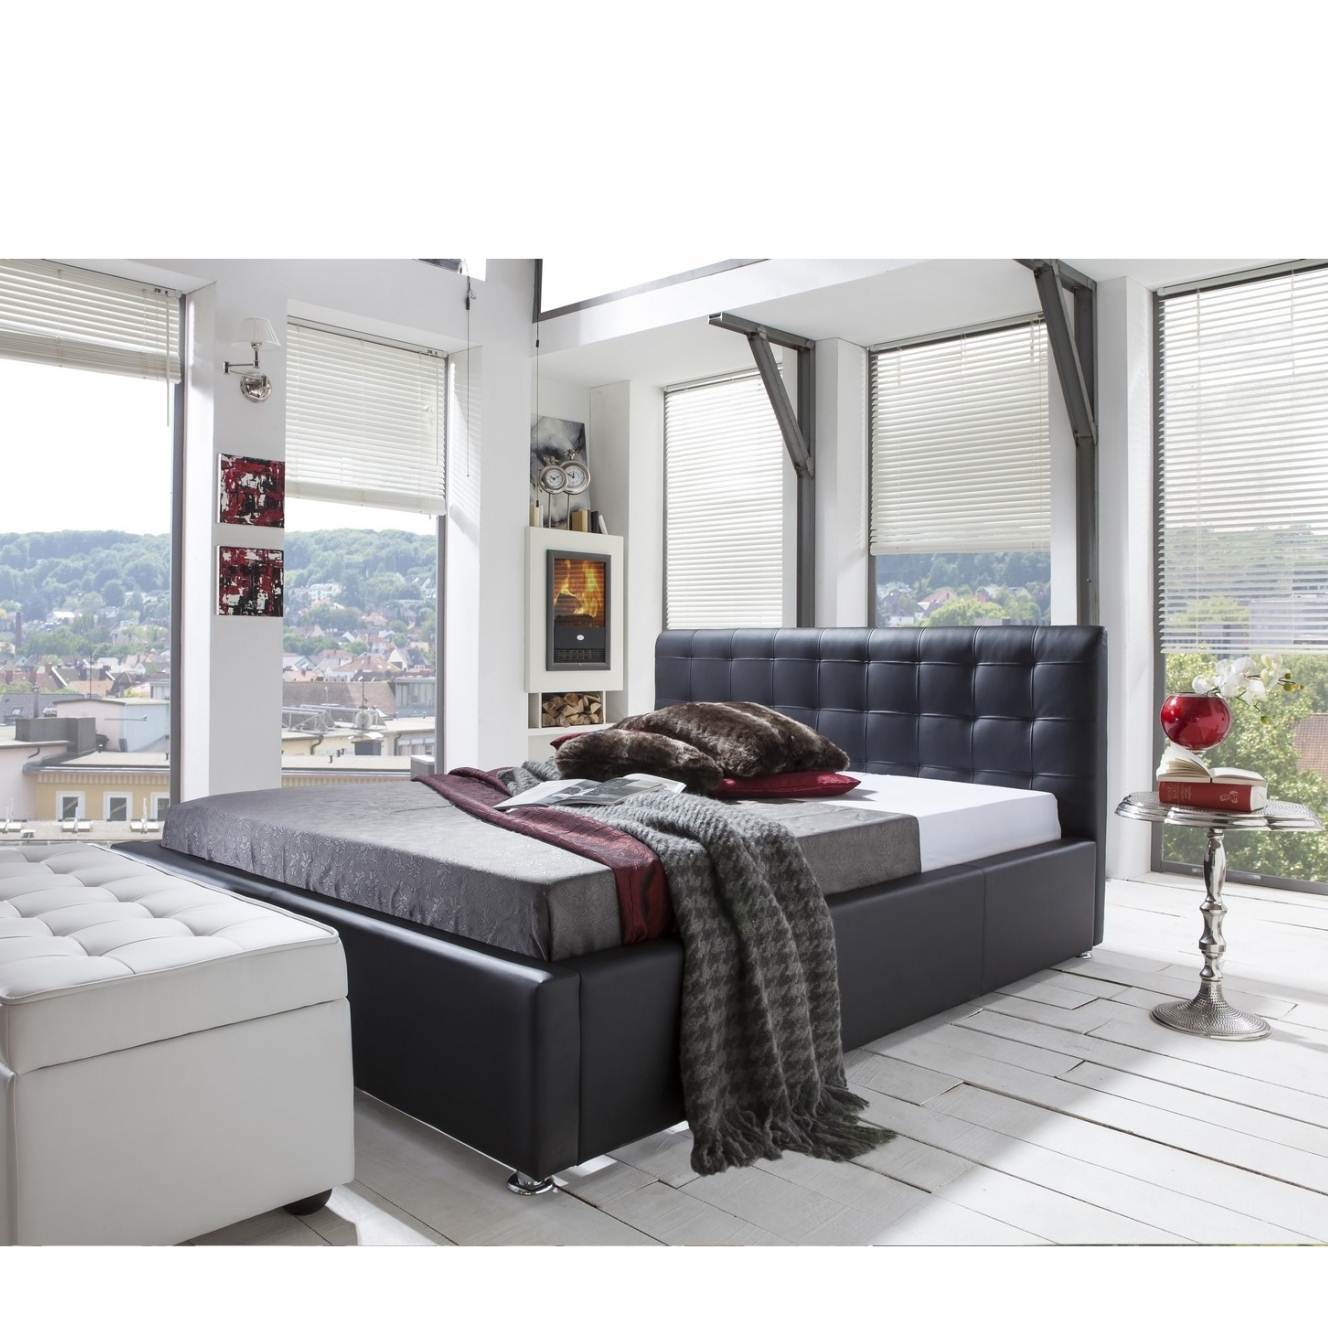 deco in paris lit capitonne en cuir 160x200 cm adriana adriana 160x200. Black Bedroom Furniture Sets. Home Design Ideas